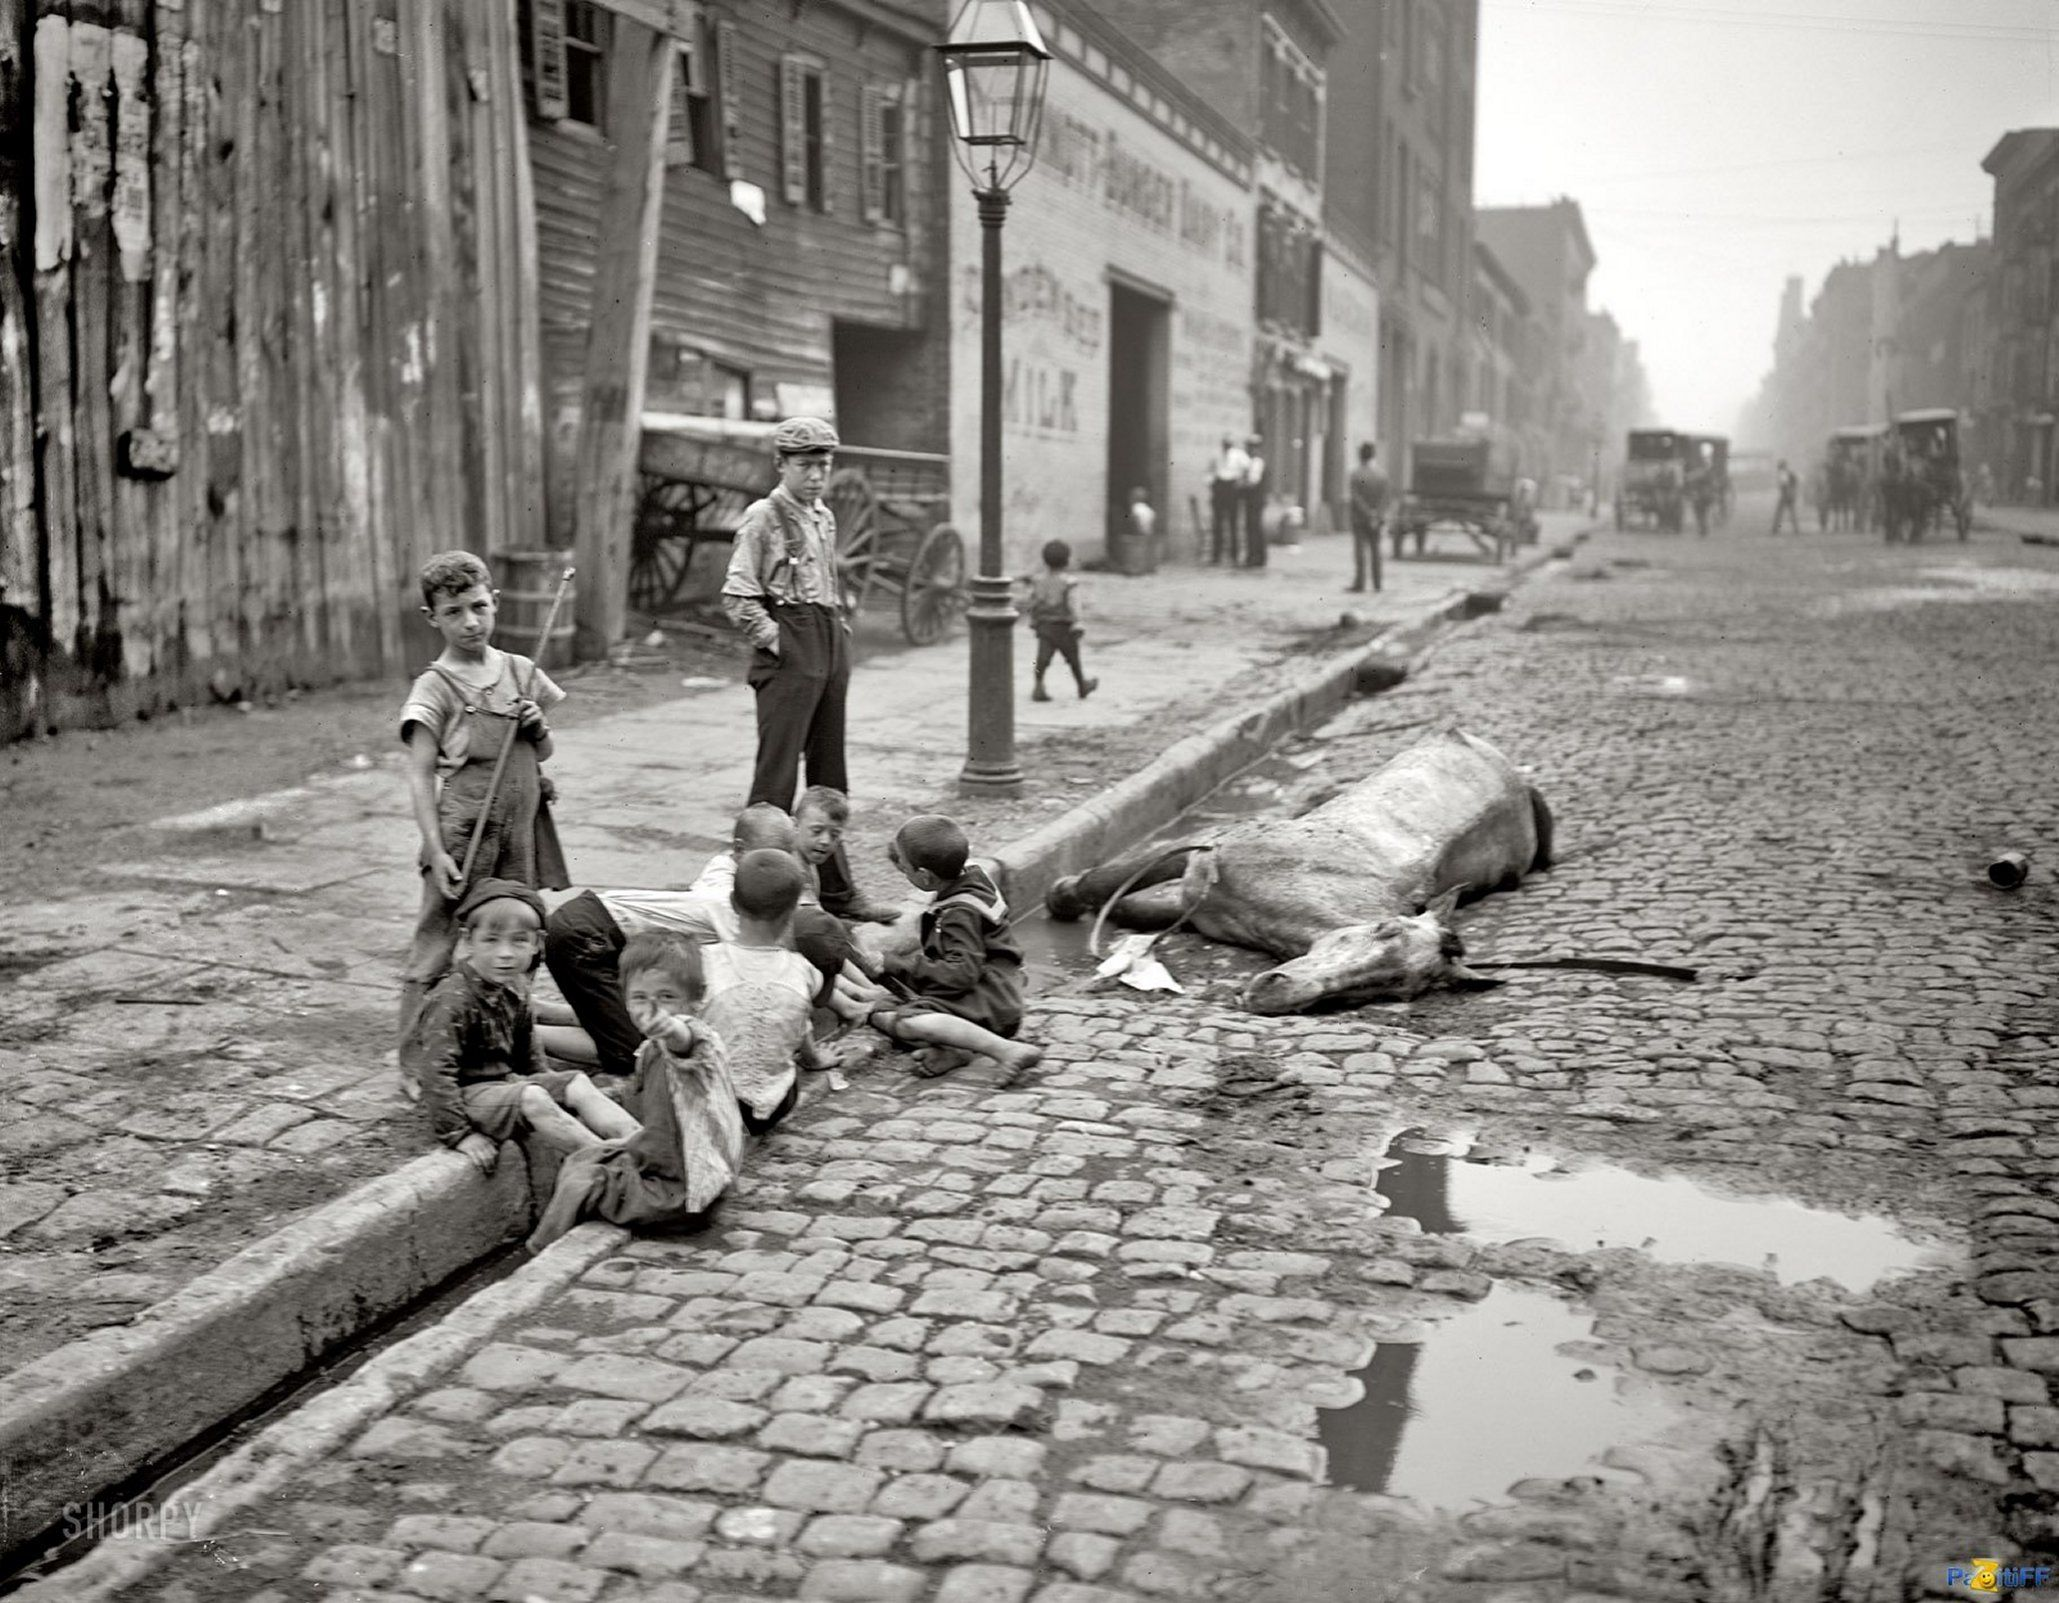 here s what new york city looked like before sanitation the way children played in the streets during the great depression as the streets are